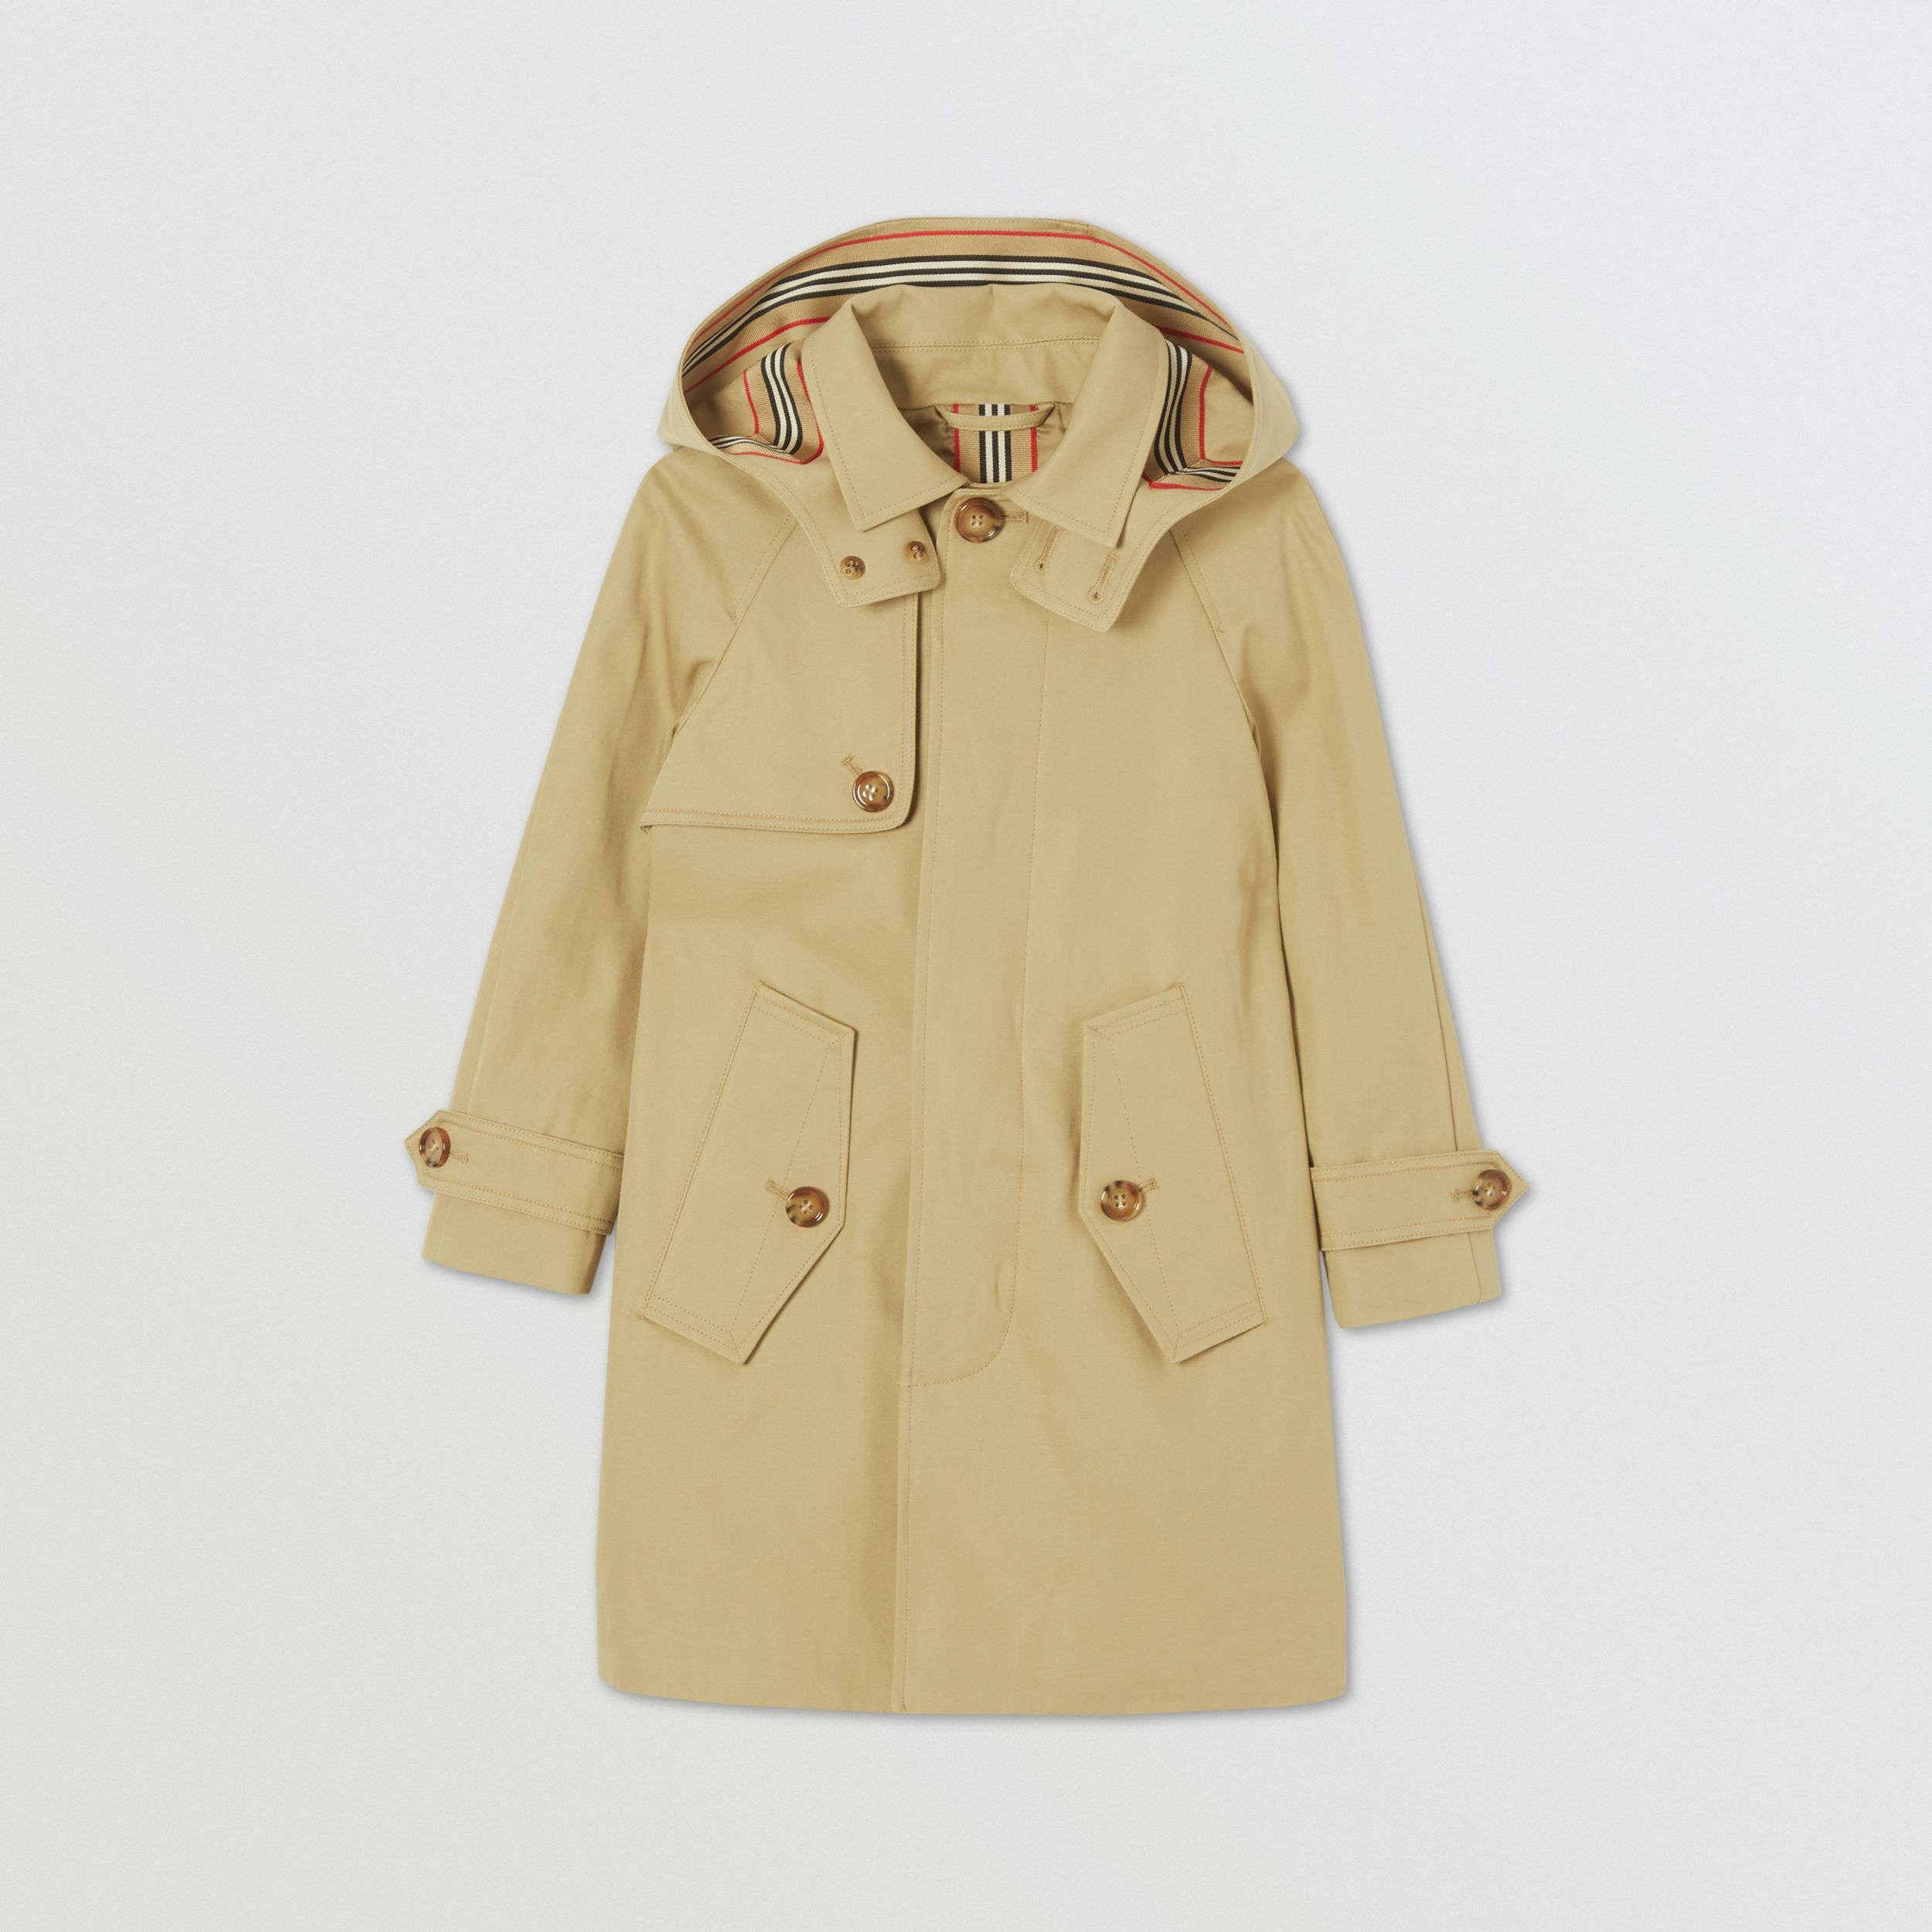 Detachable Hood Icon Stripe Trim Cotton Car Coat in Honey | Burberry - 1